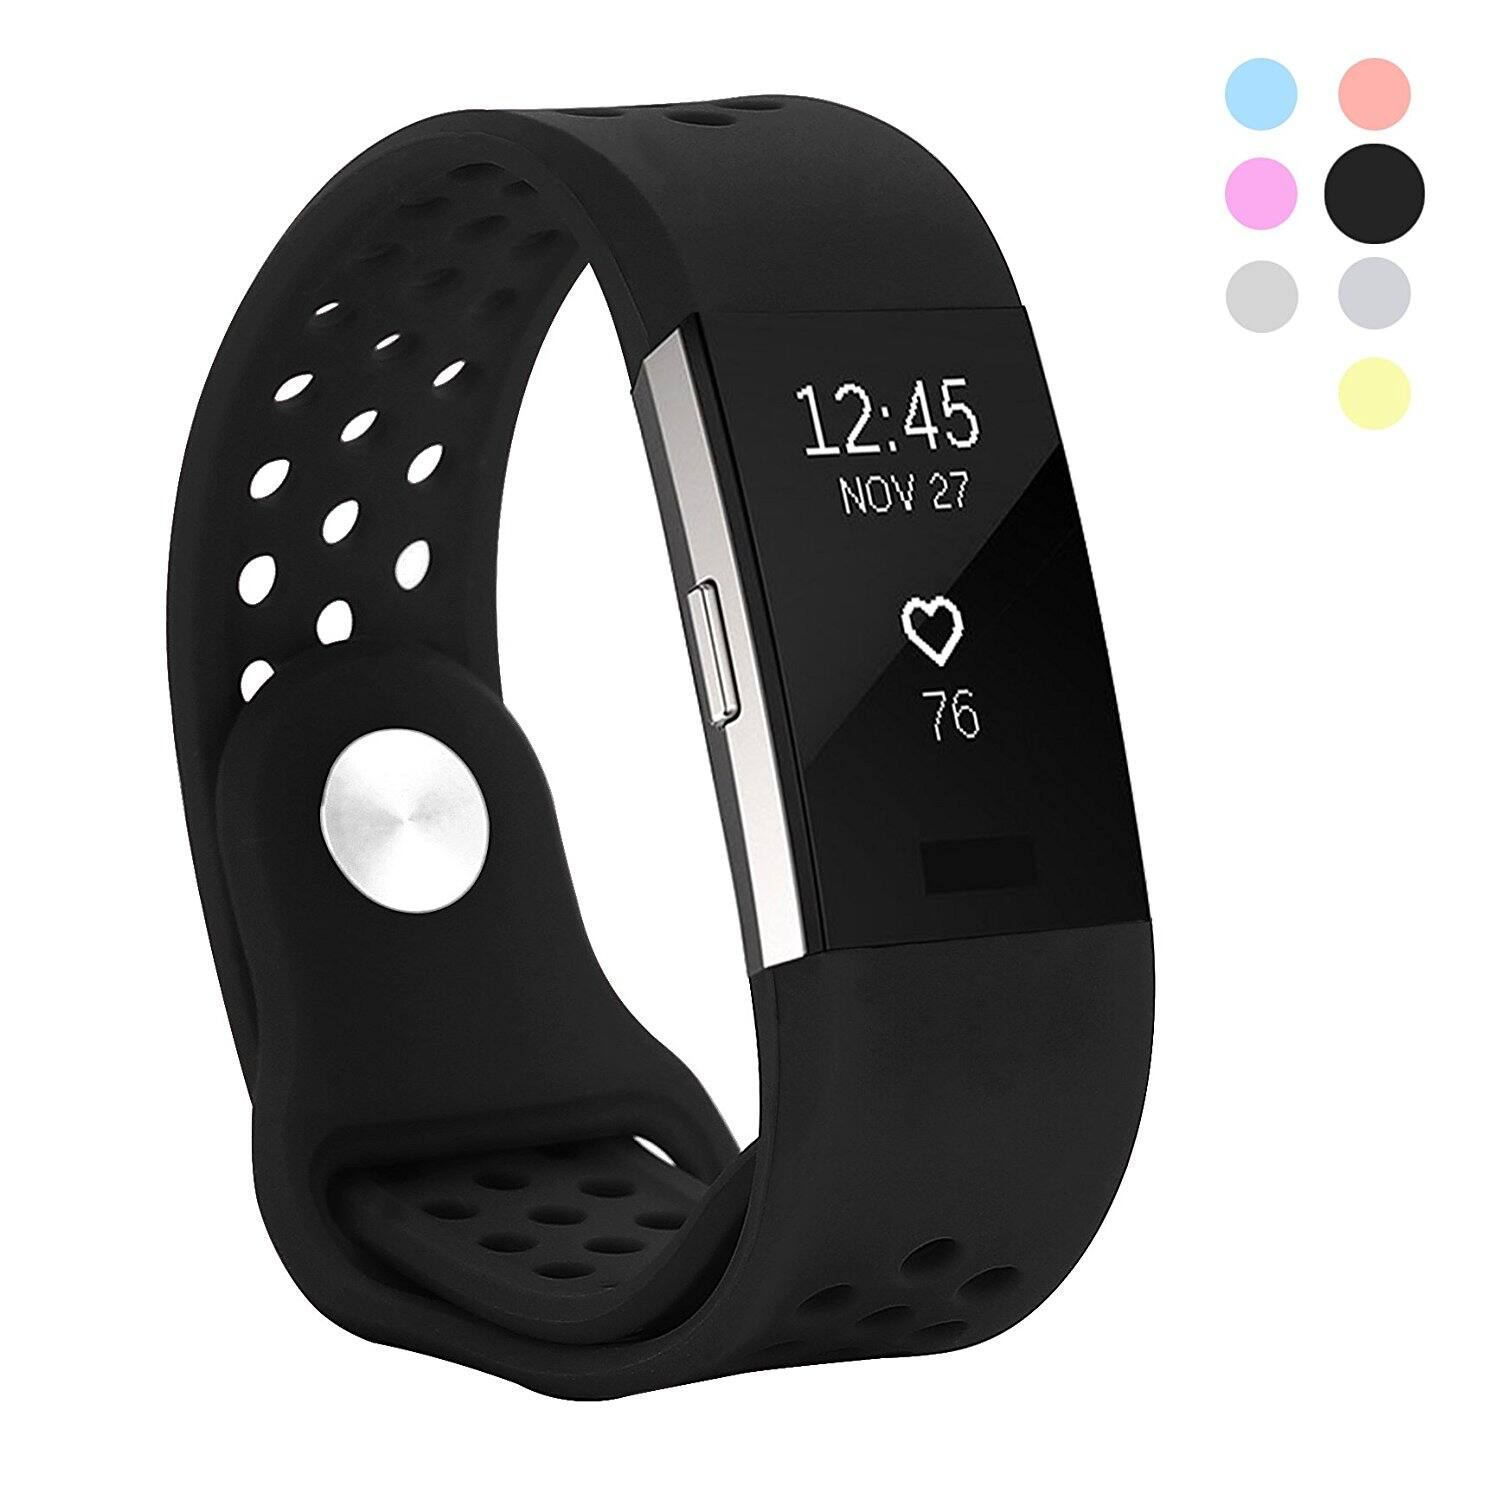 Hanlesi Fitbit Charge 2 Bands Silicone (Various colors) from $5.49